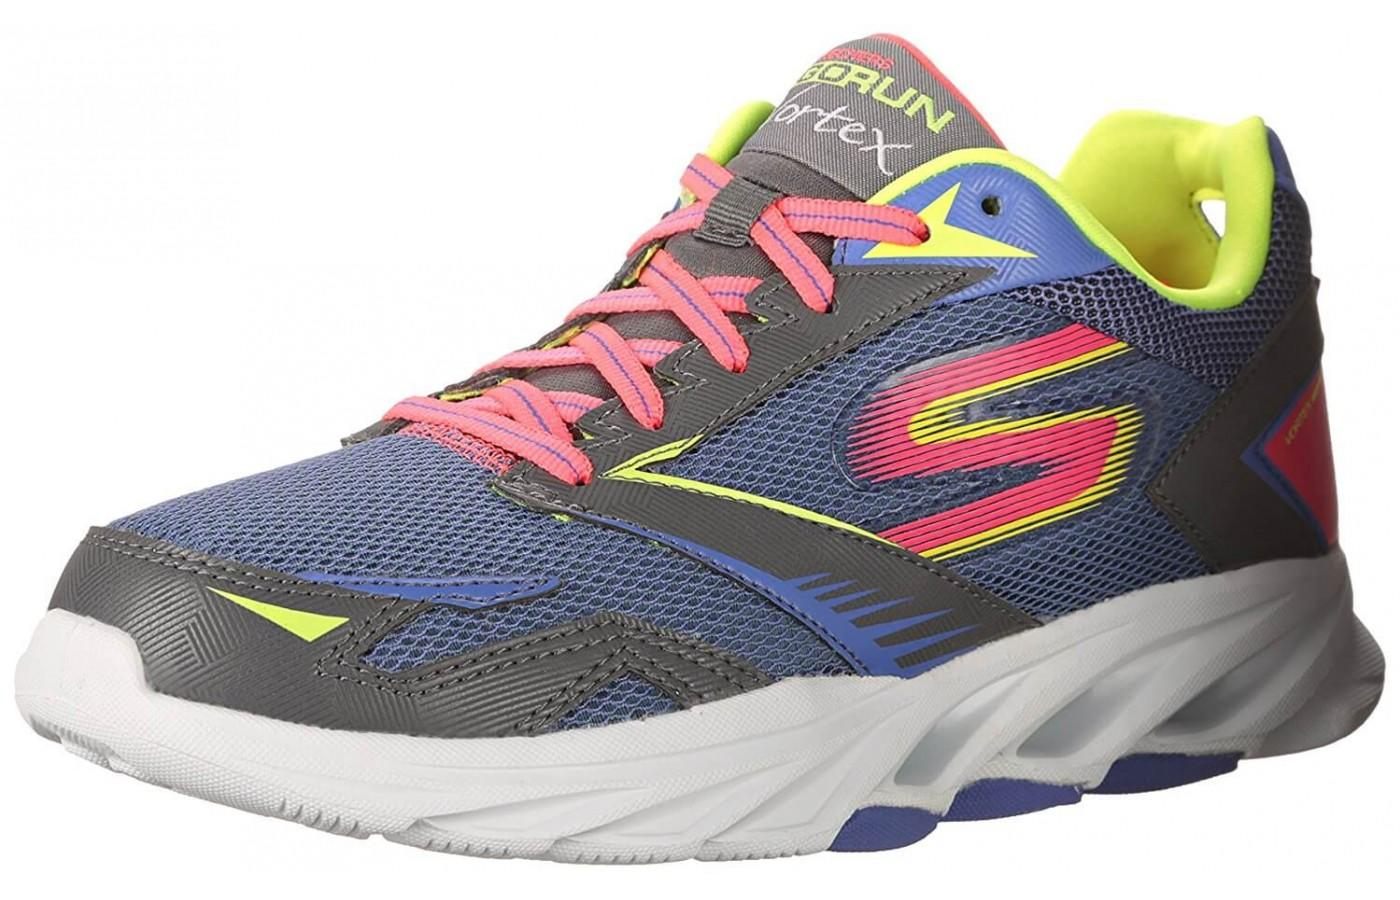 Skechers GoRun Vortex comes in a cool 80s-style color option